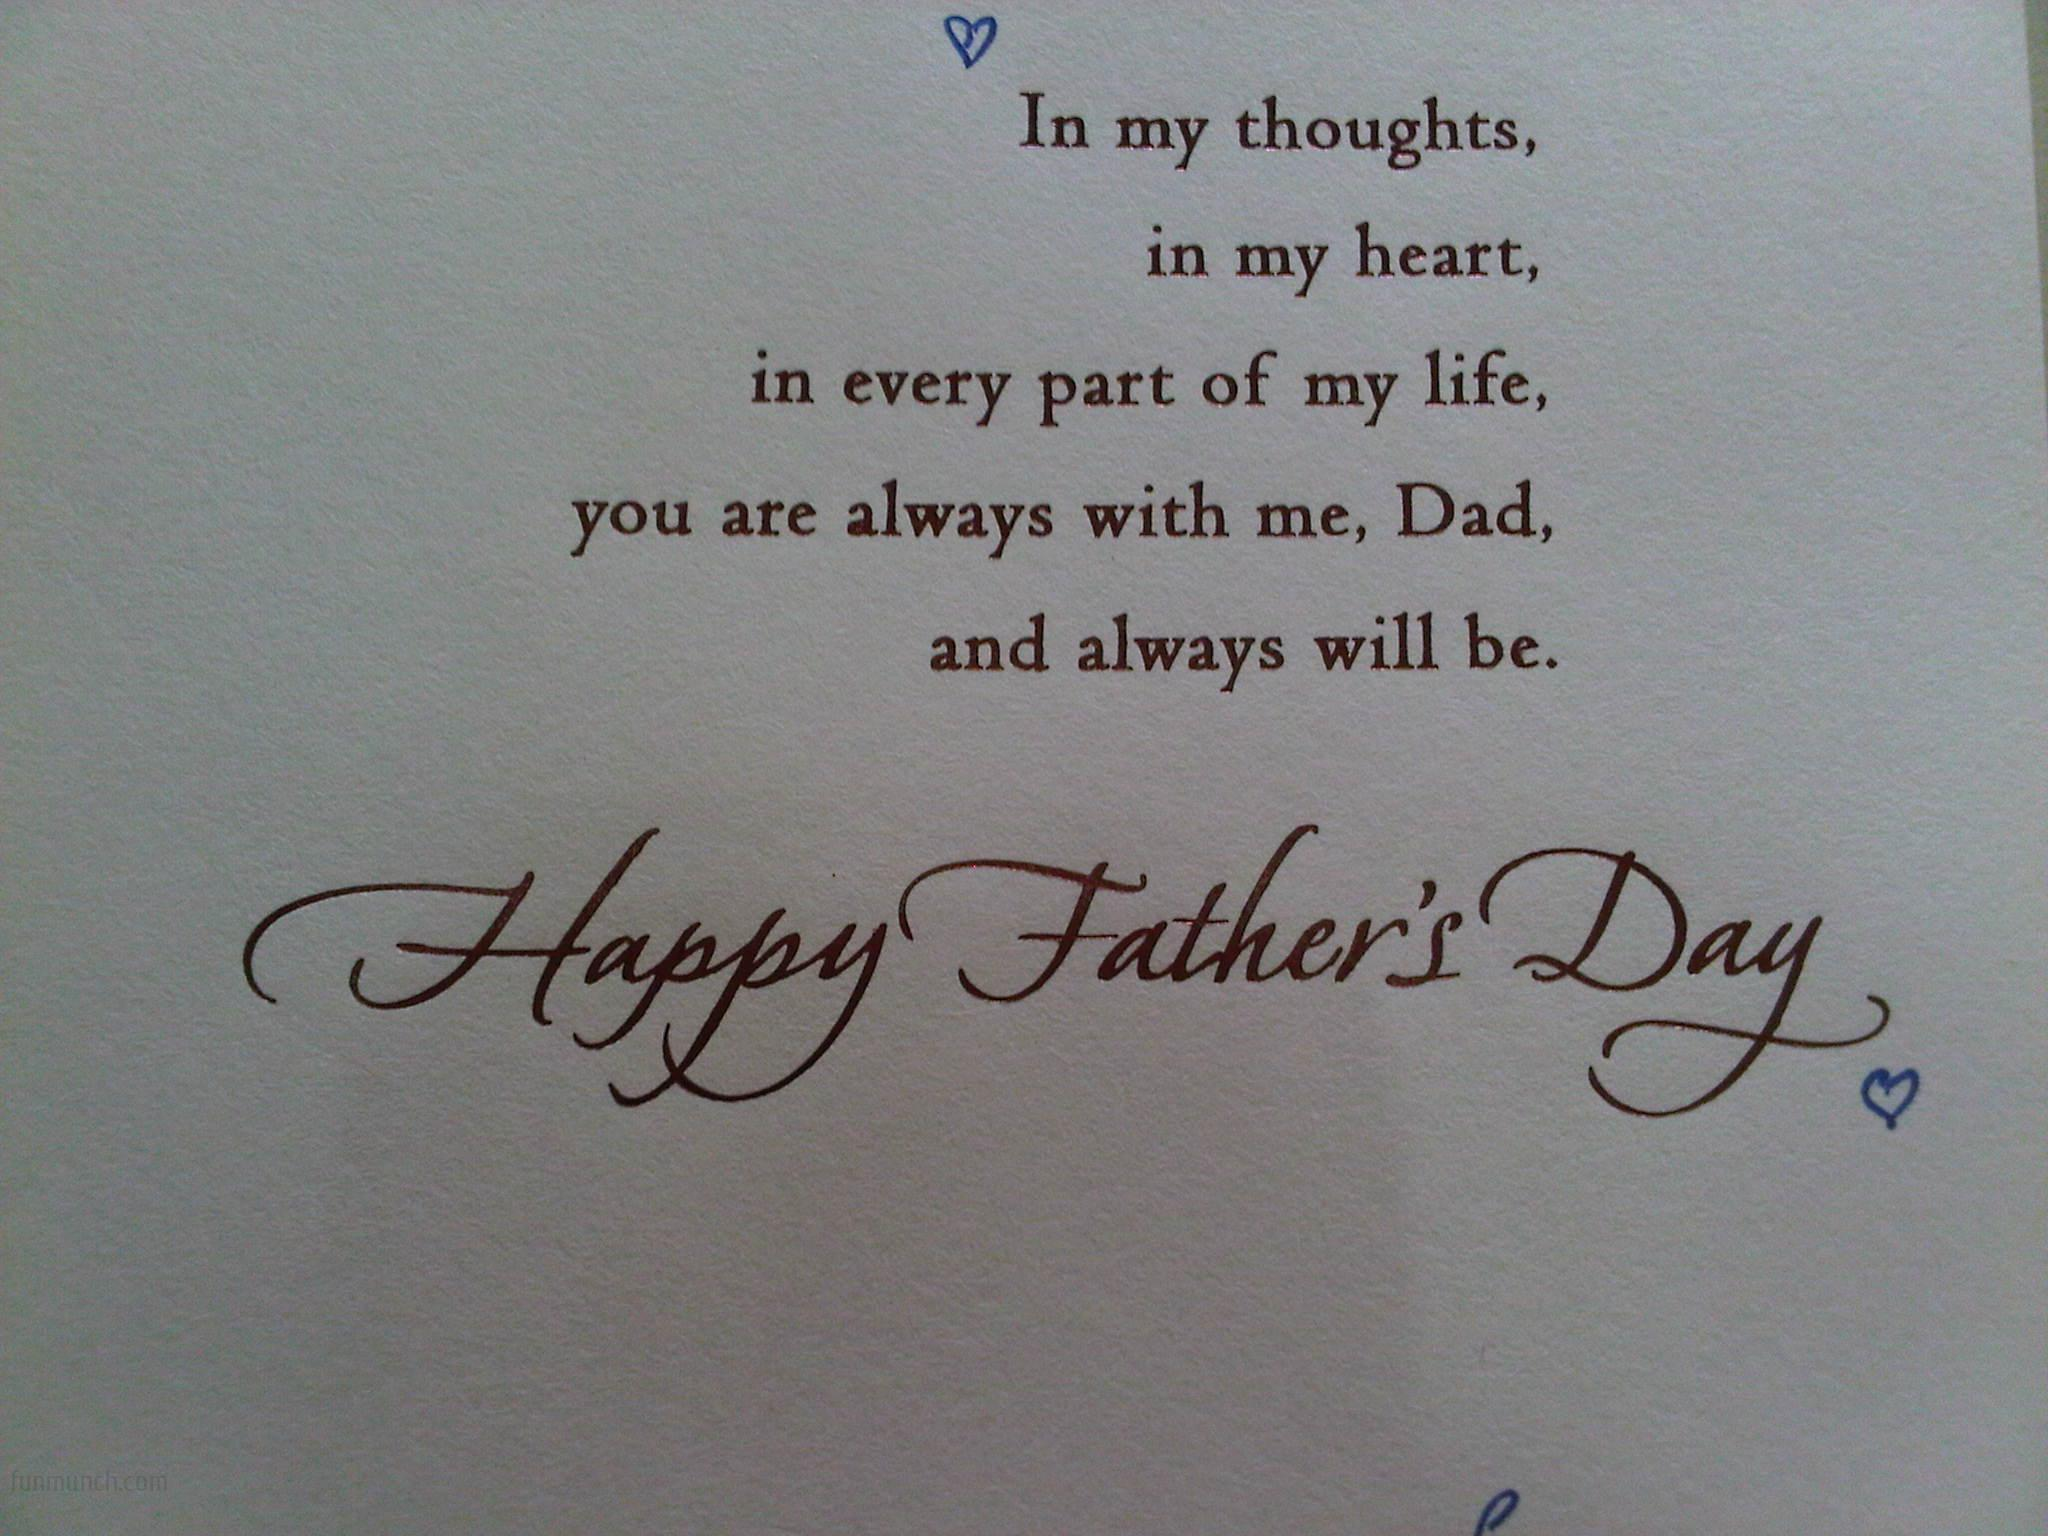 Black Fathers Day Quotes QuotesGram 2048x1536